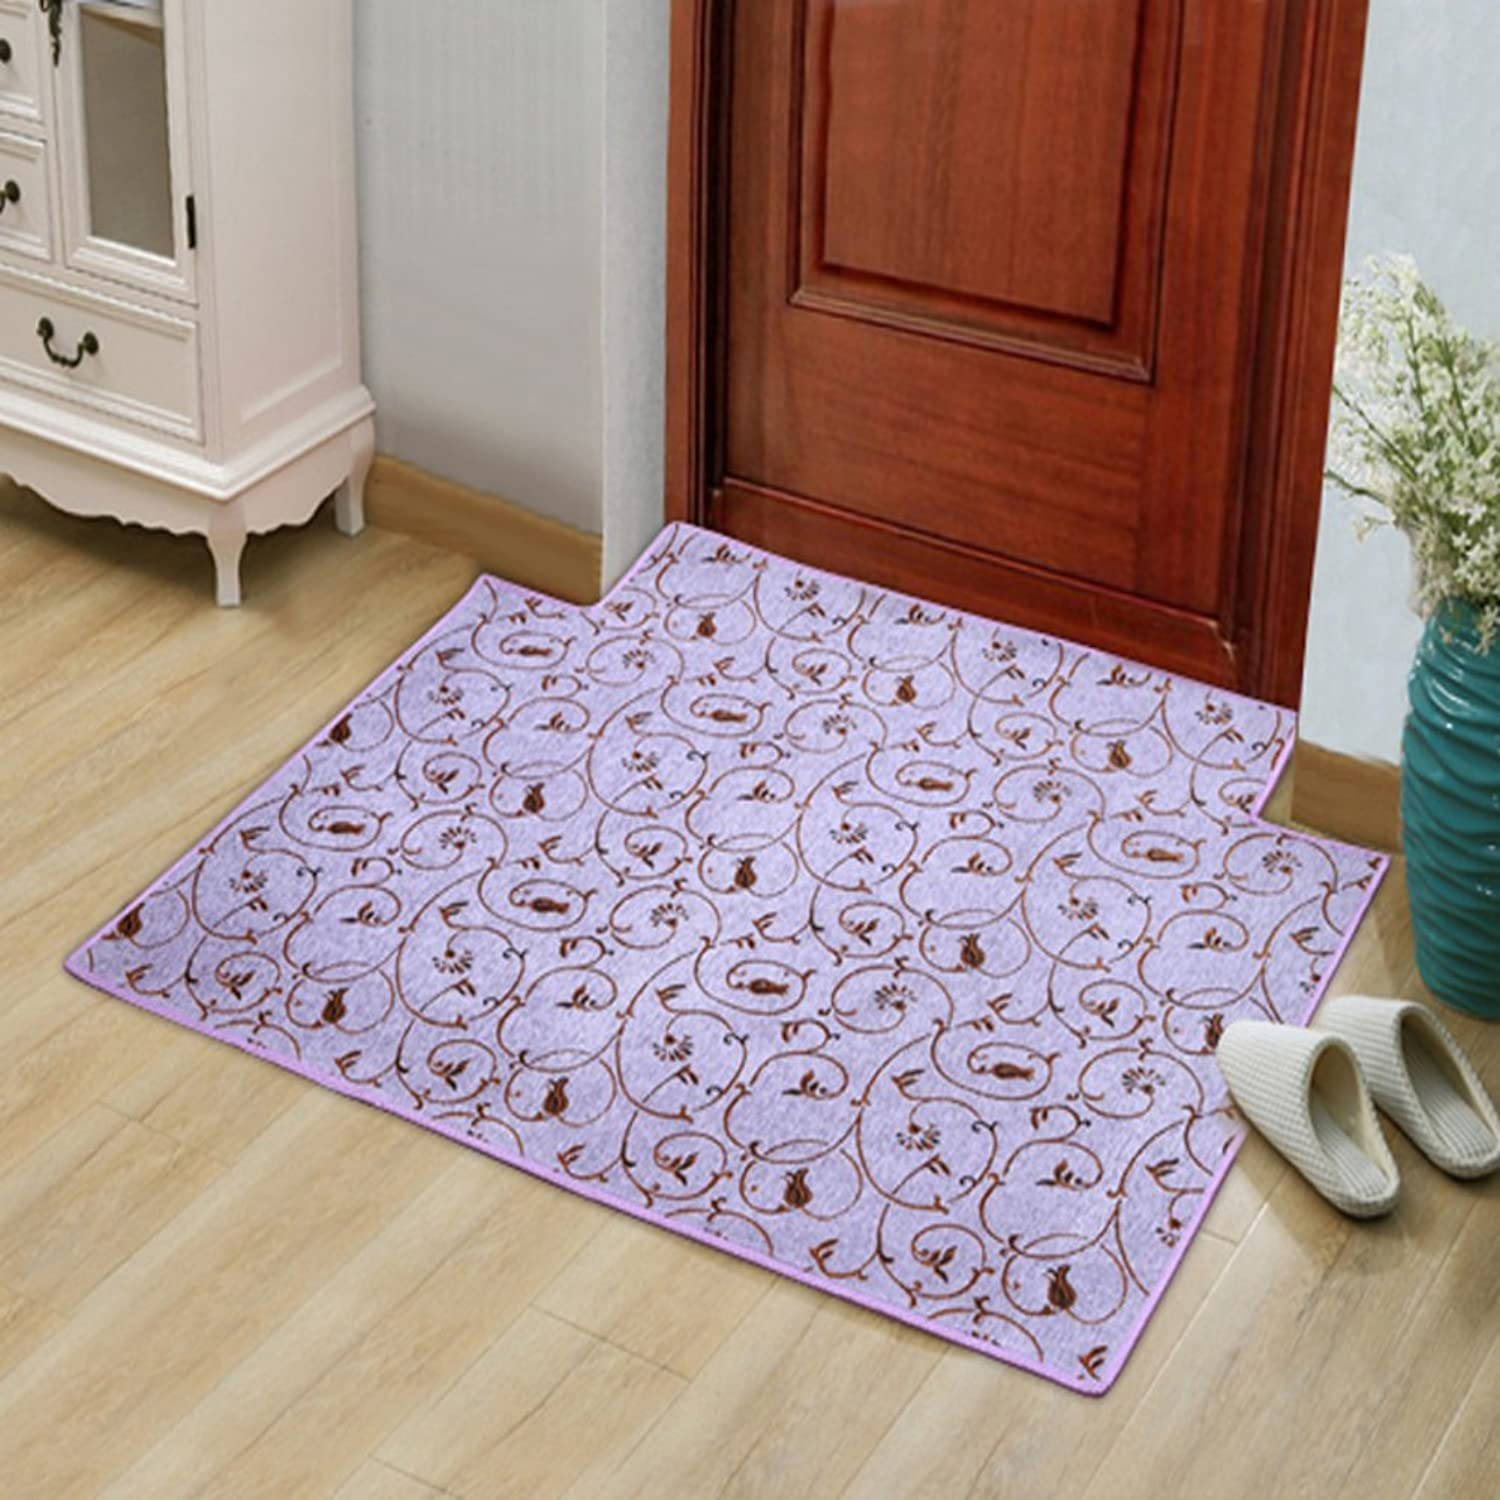 Household Xuan Guan Fang mat Bedroom mats in The Hall Indoor mats-H 90x140cm(35x55inch)